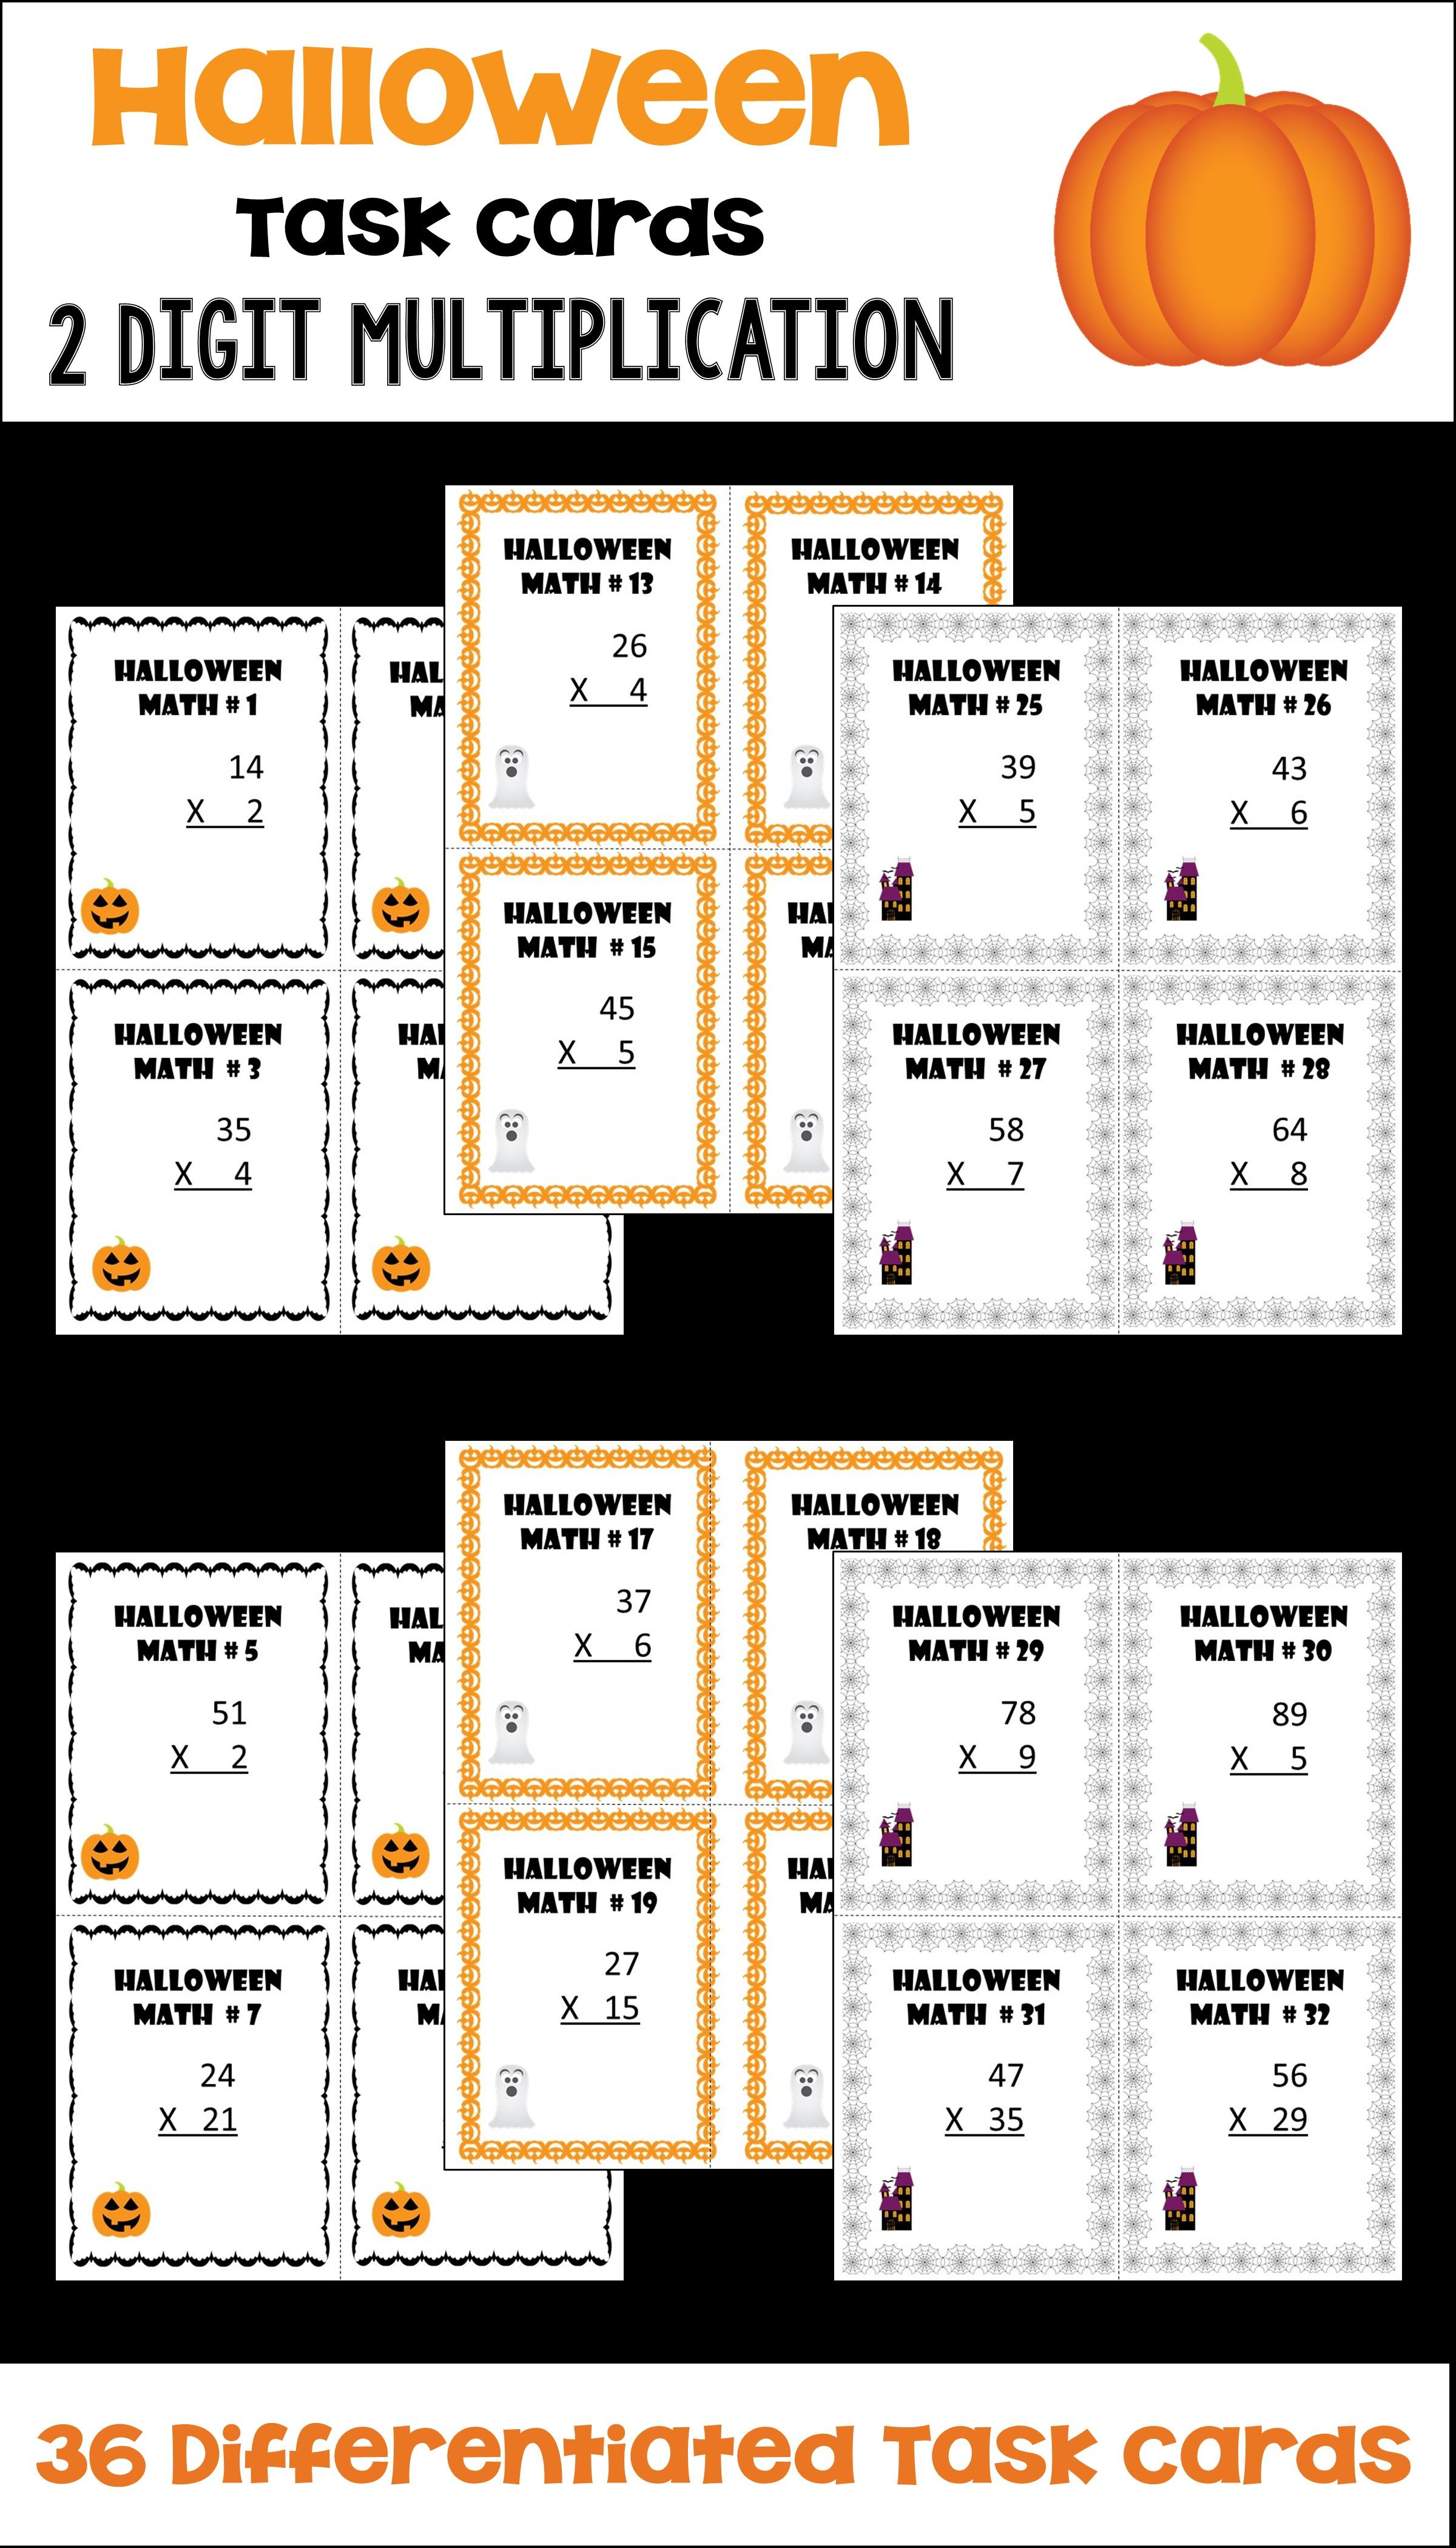 Halloween Math 2 Digit Multiplication Task Cards Differentiated